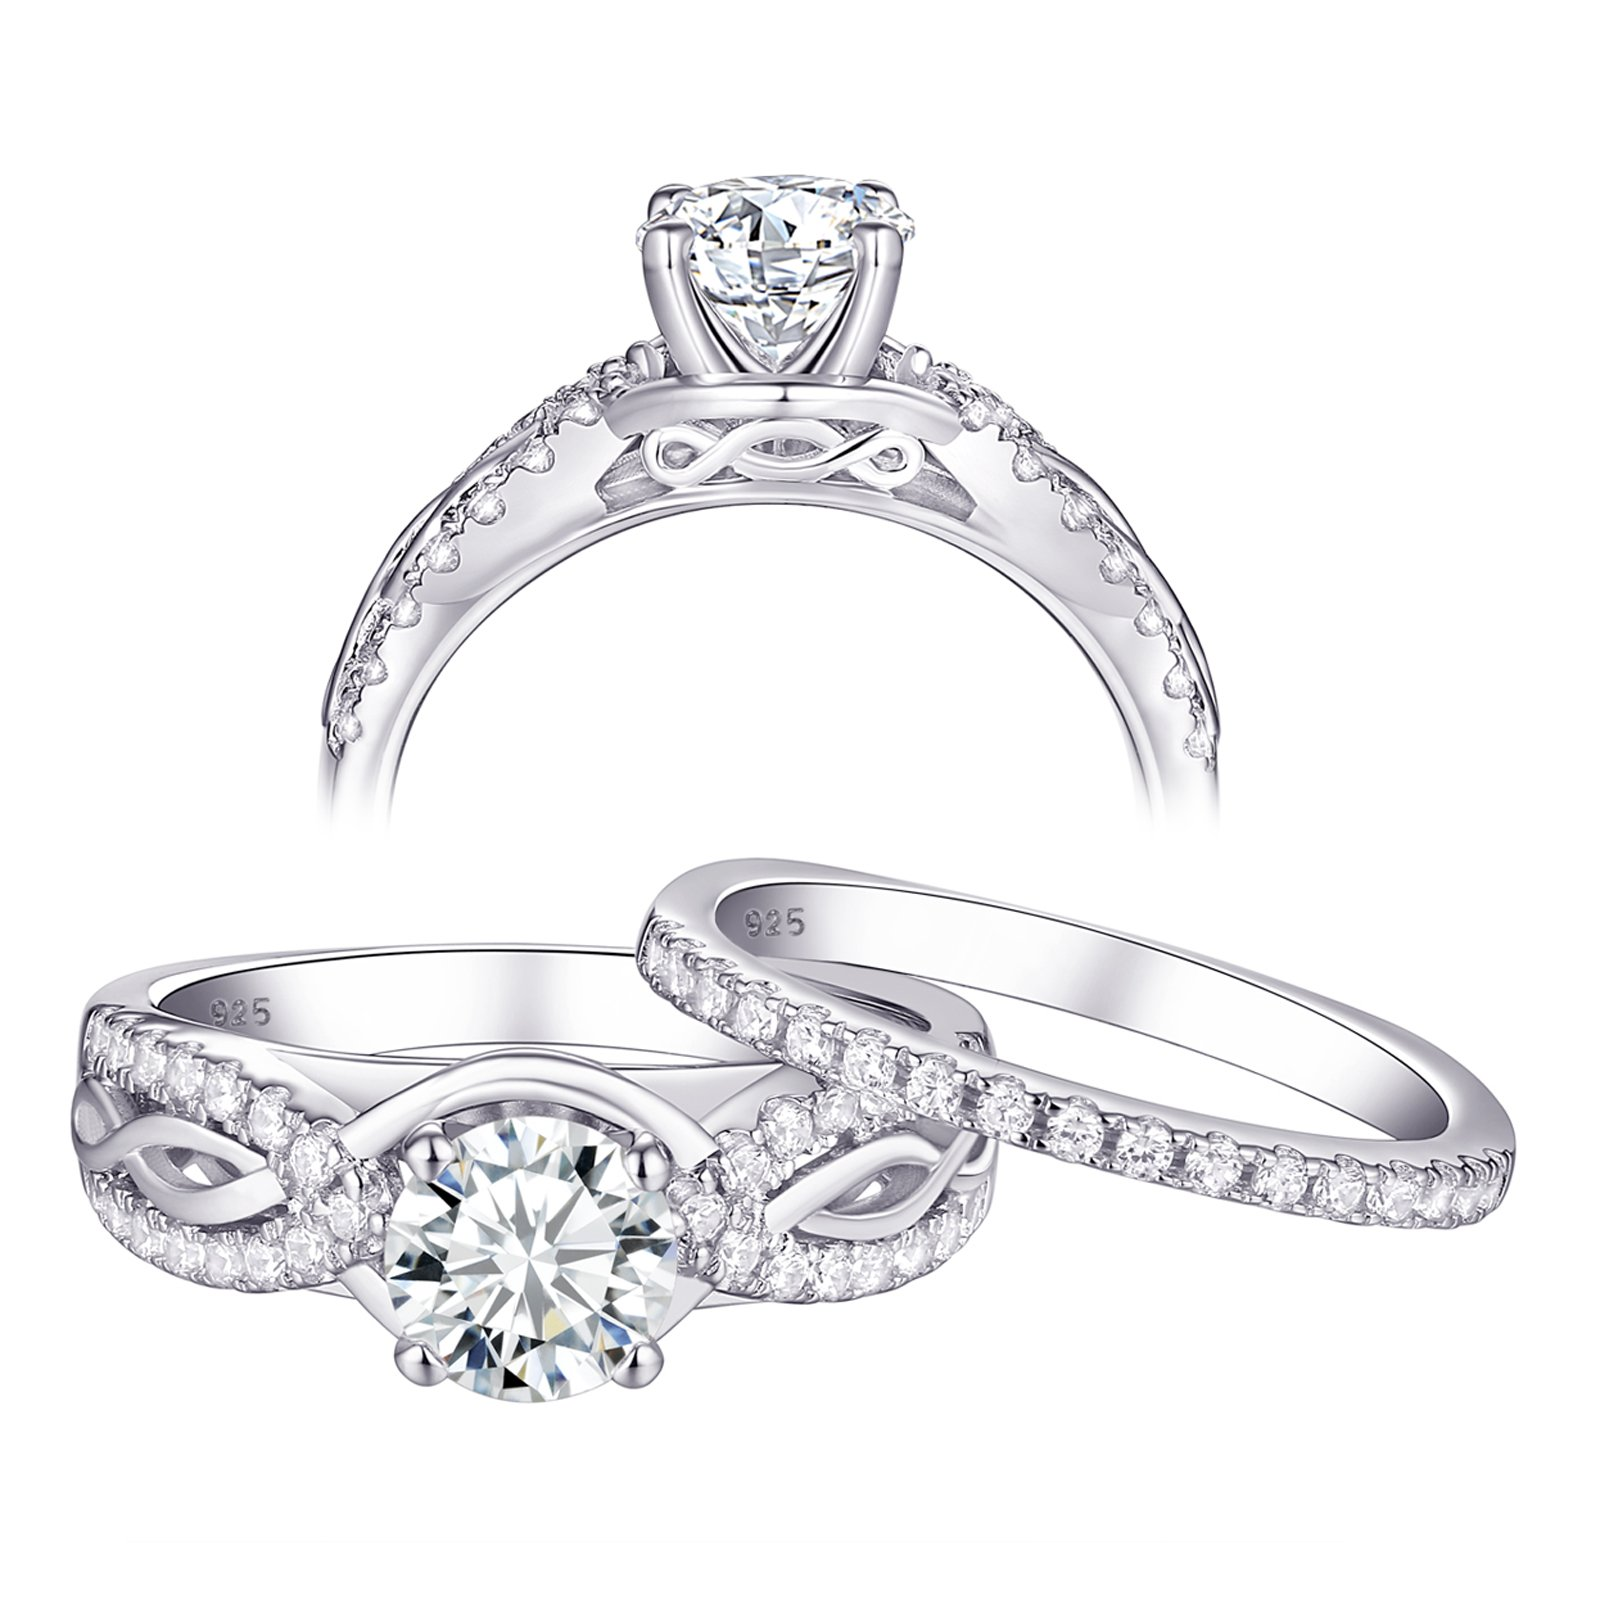 Newshe Engagement Rings Wedding Ring Sets for Women 925 Sterling Silver 1.5ct Round White AAA Cz Size 7